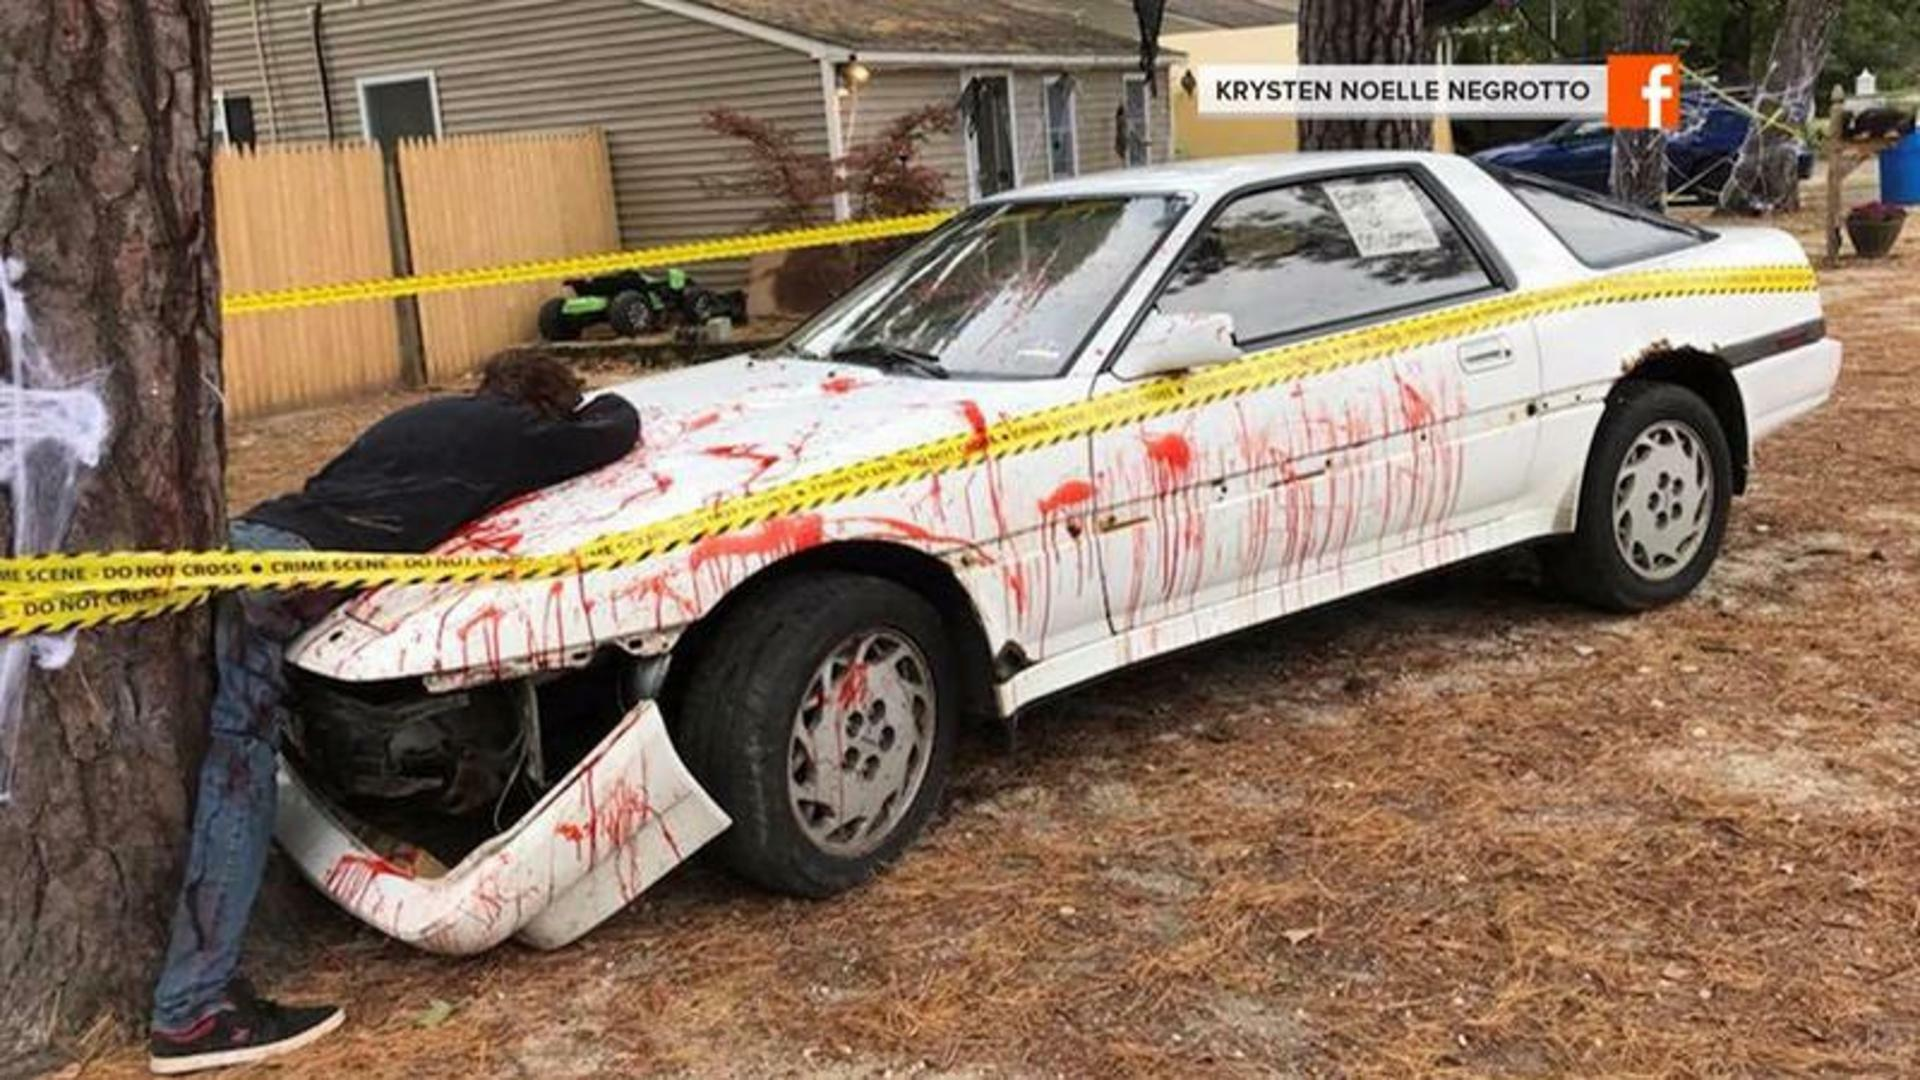 Police Called Over Gruesome Halloween Decorations | iHeartRadio